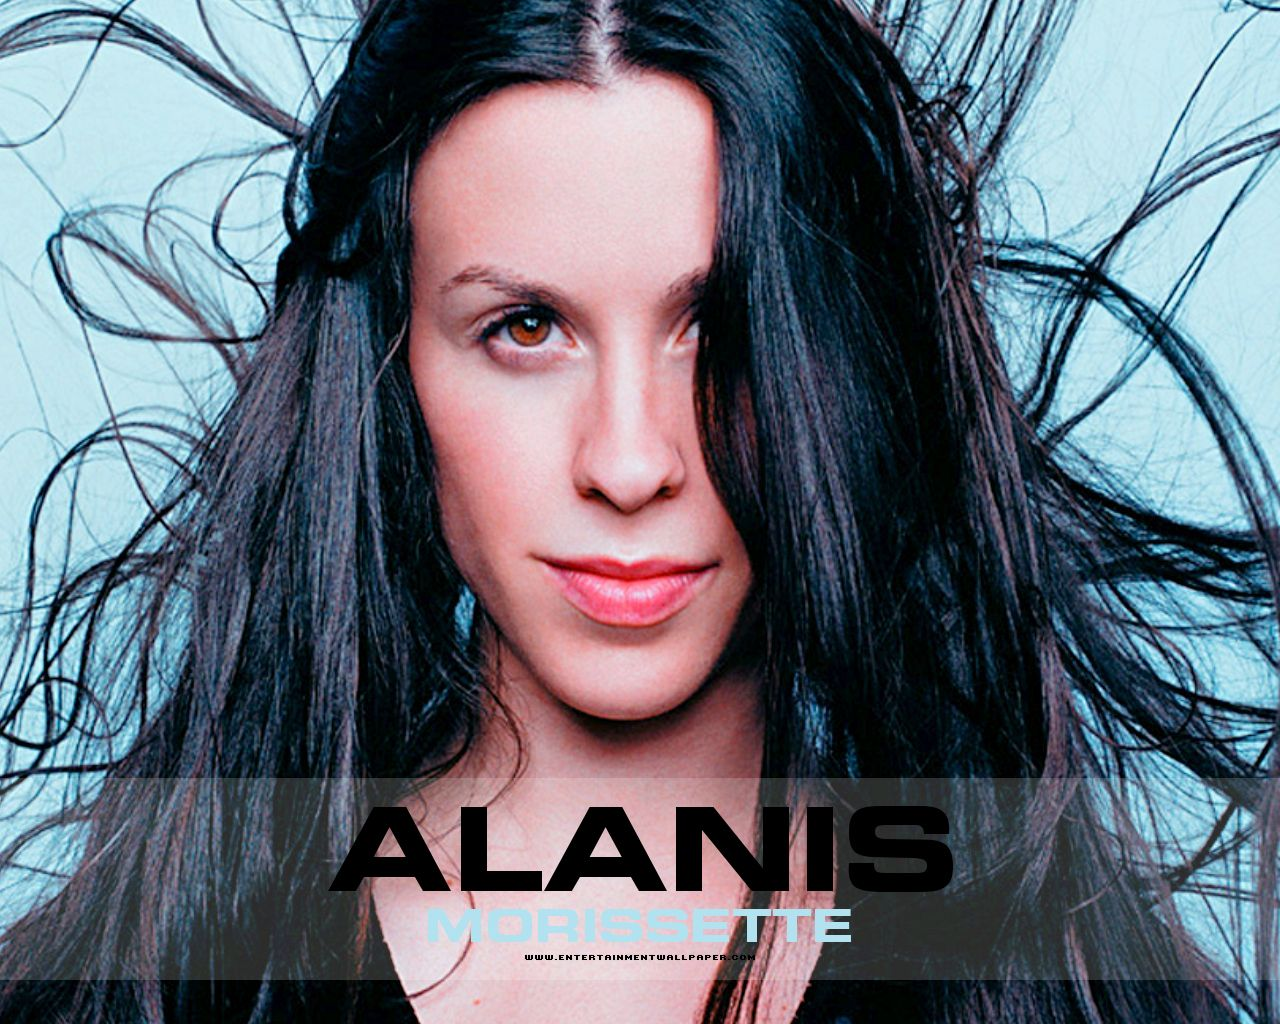 an introduction to the life of alanis morissette ↑ a b c the sun magazine | who hears this sound (page 3) ↑ a b c cafe dharma video page (the video needs to be selected manually) ↑ adyashanti way of liberation ↑ alanis morissette - wake up san francisco with adyashanti & tami simon .